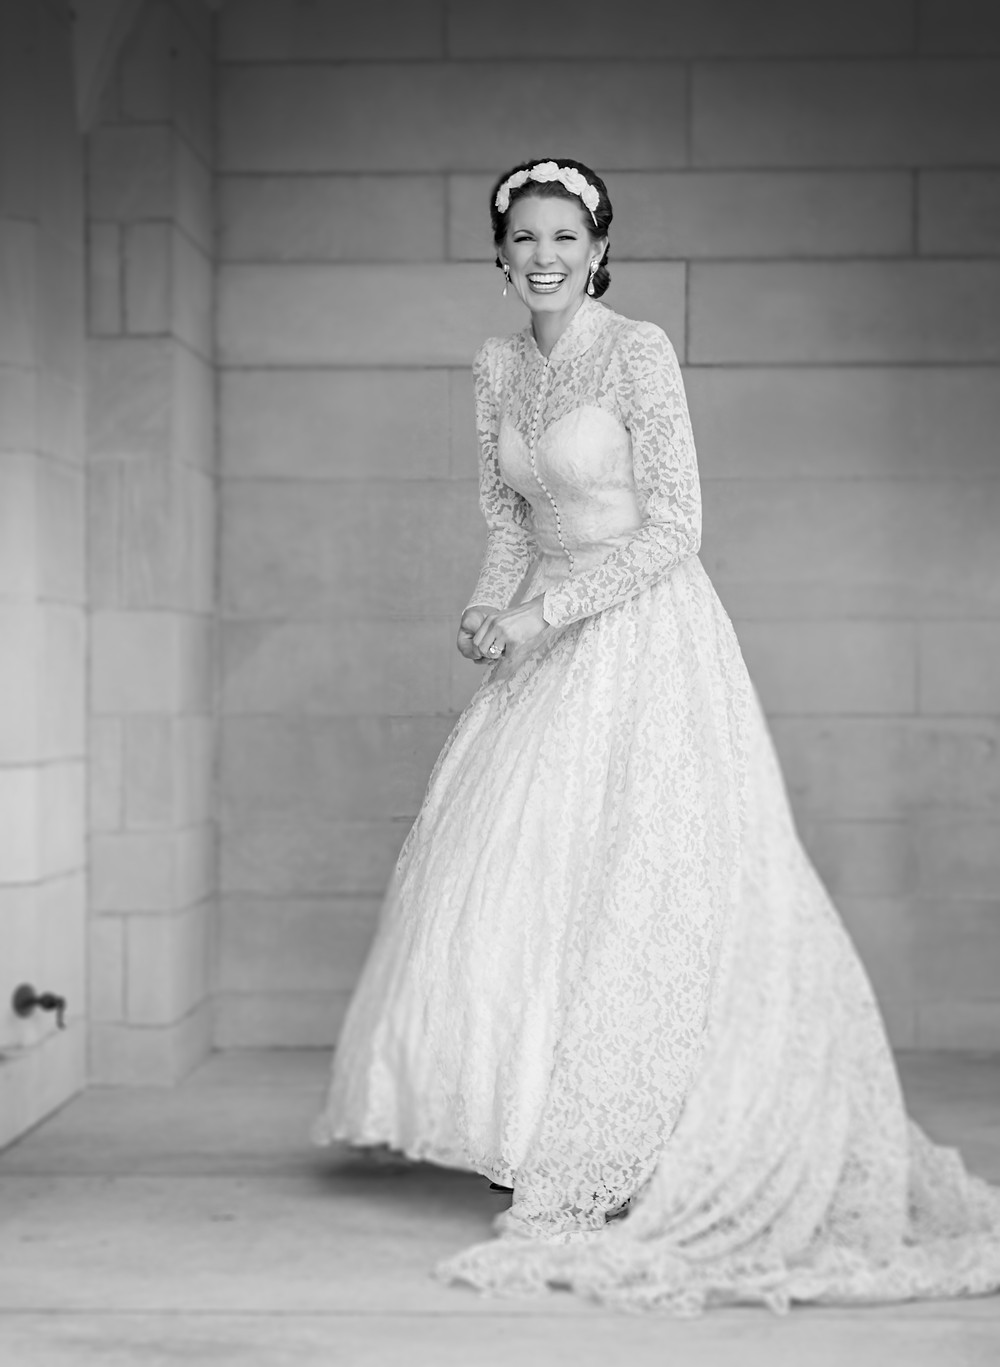 Bride laughs wearing vintage dress